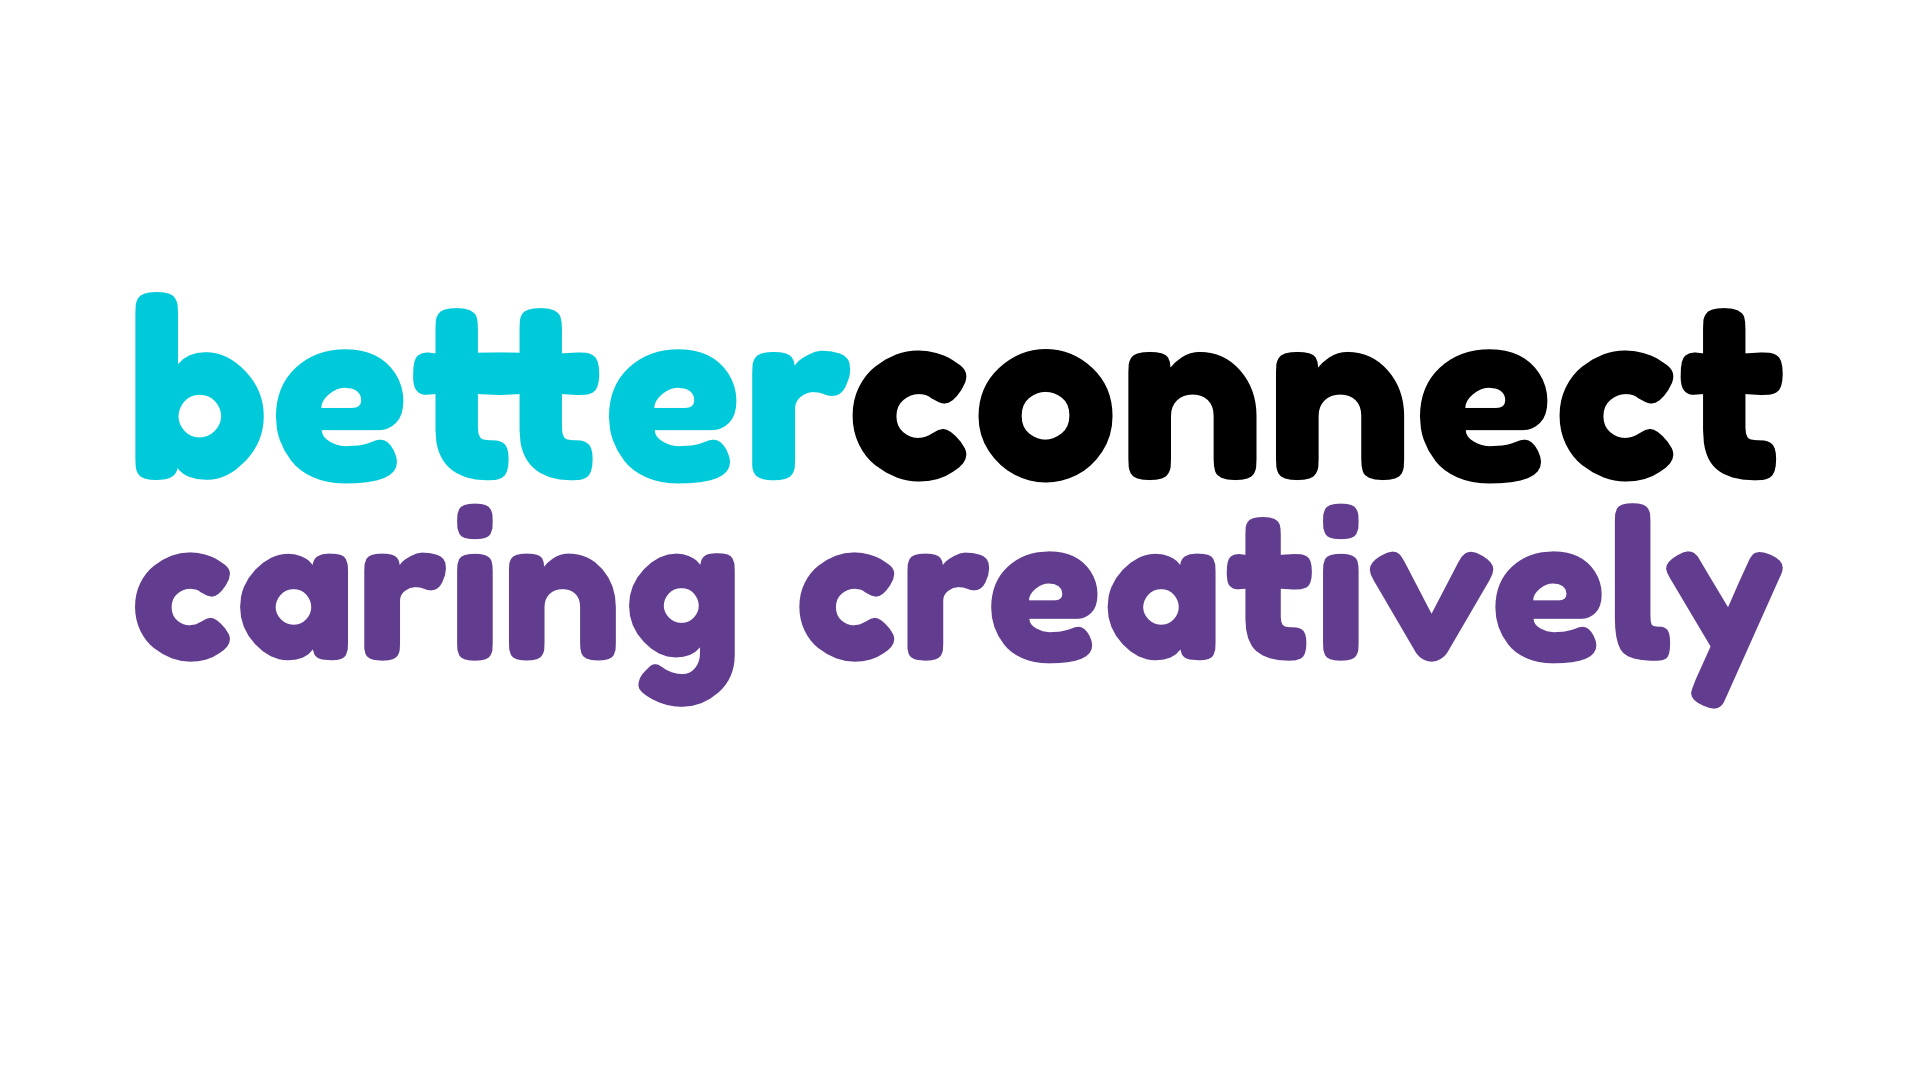 Better Connect - Caring Creatively